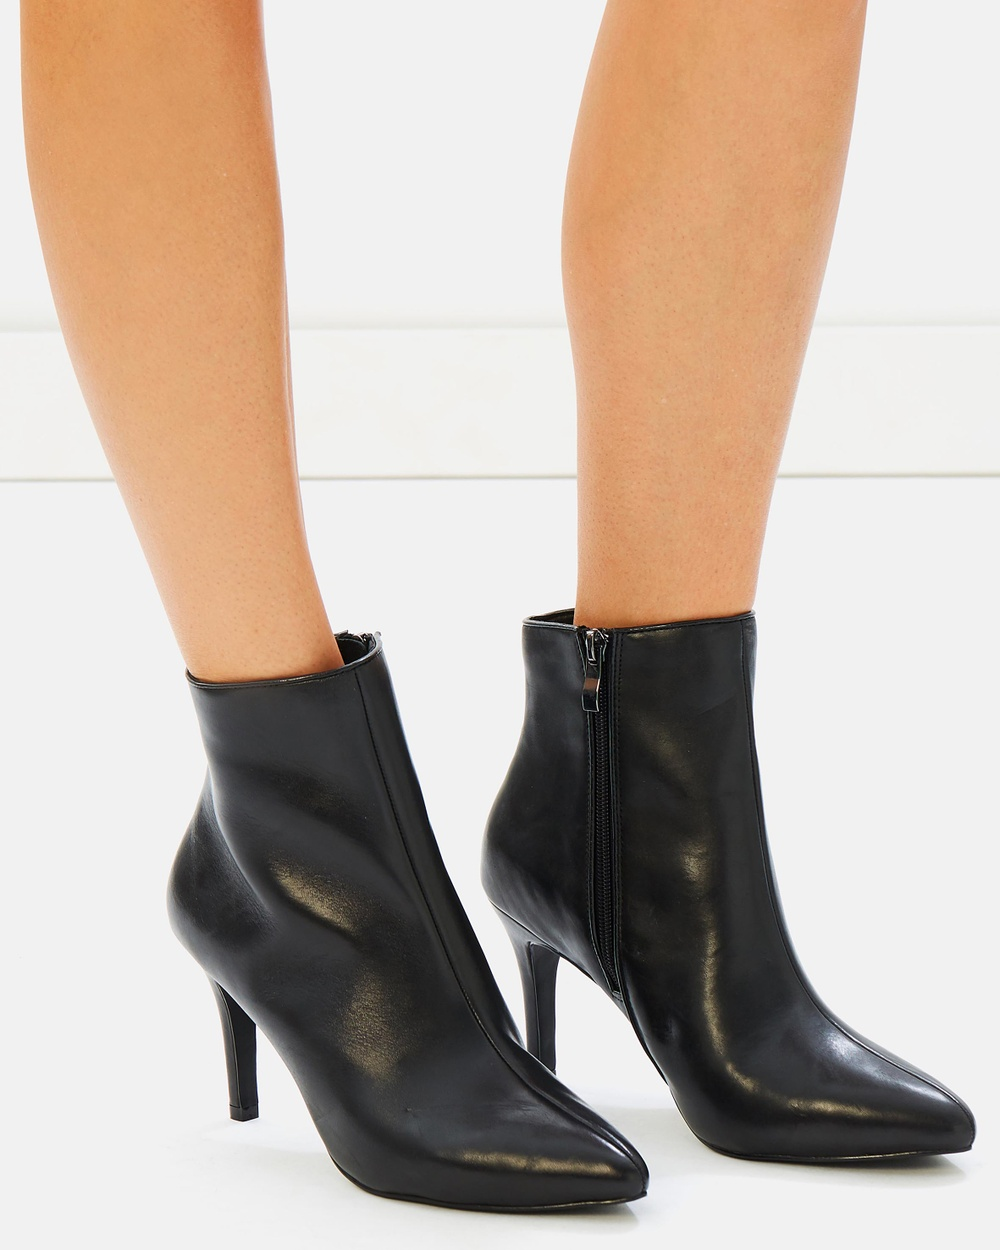 Atmos & Here ICONIC EXCLUSIVE Sabrina Leather Ankle Boots All Pumps Black Leather ICONIC EXCLUSIVE Sabrina Leather Ankle Boots